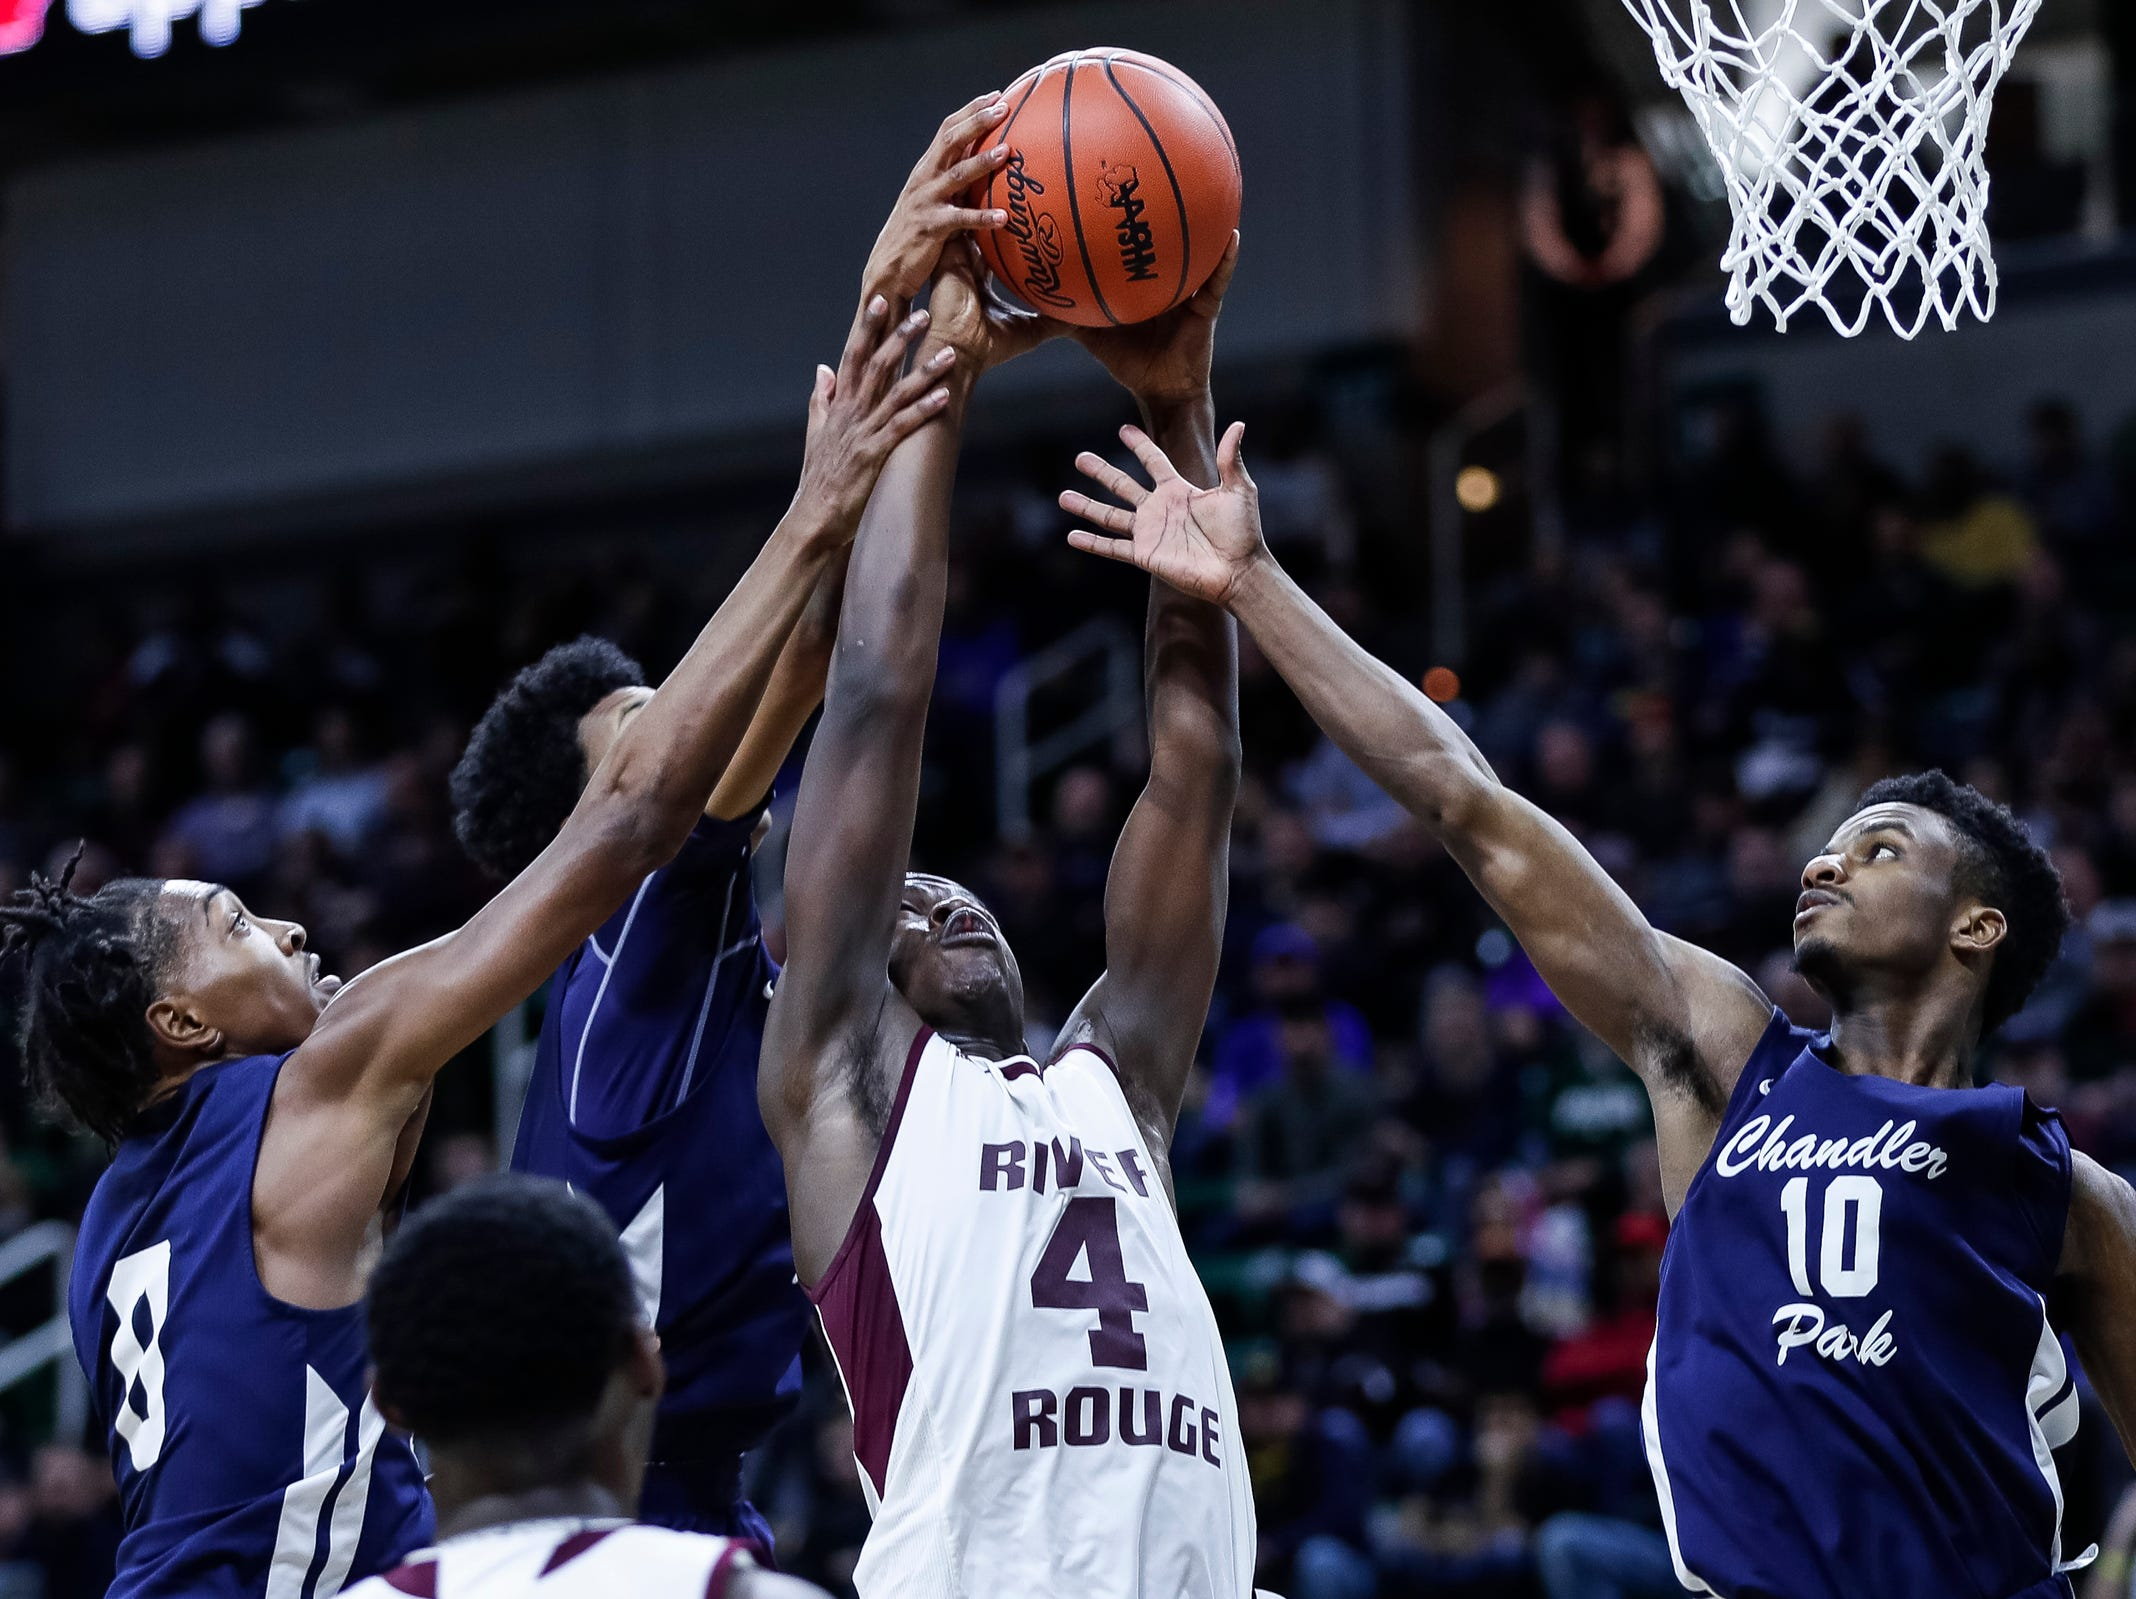 River Rouge's Legend Geeter (4) battles for a rebound during the second half of MHSAA Division 2 semifinal at the Breslin Center in East Lansing, Friday, March 15, 2019.